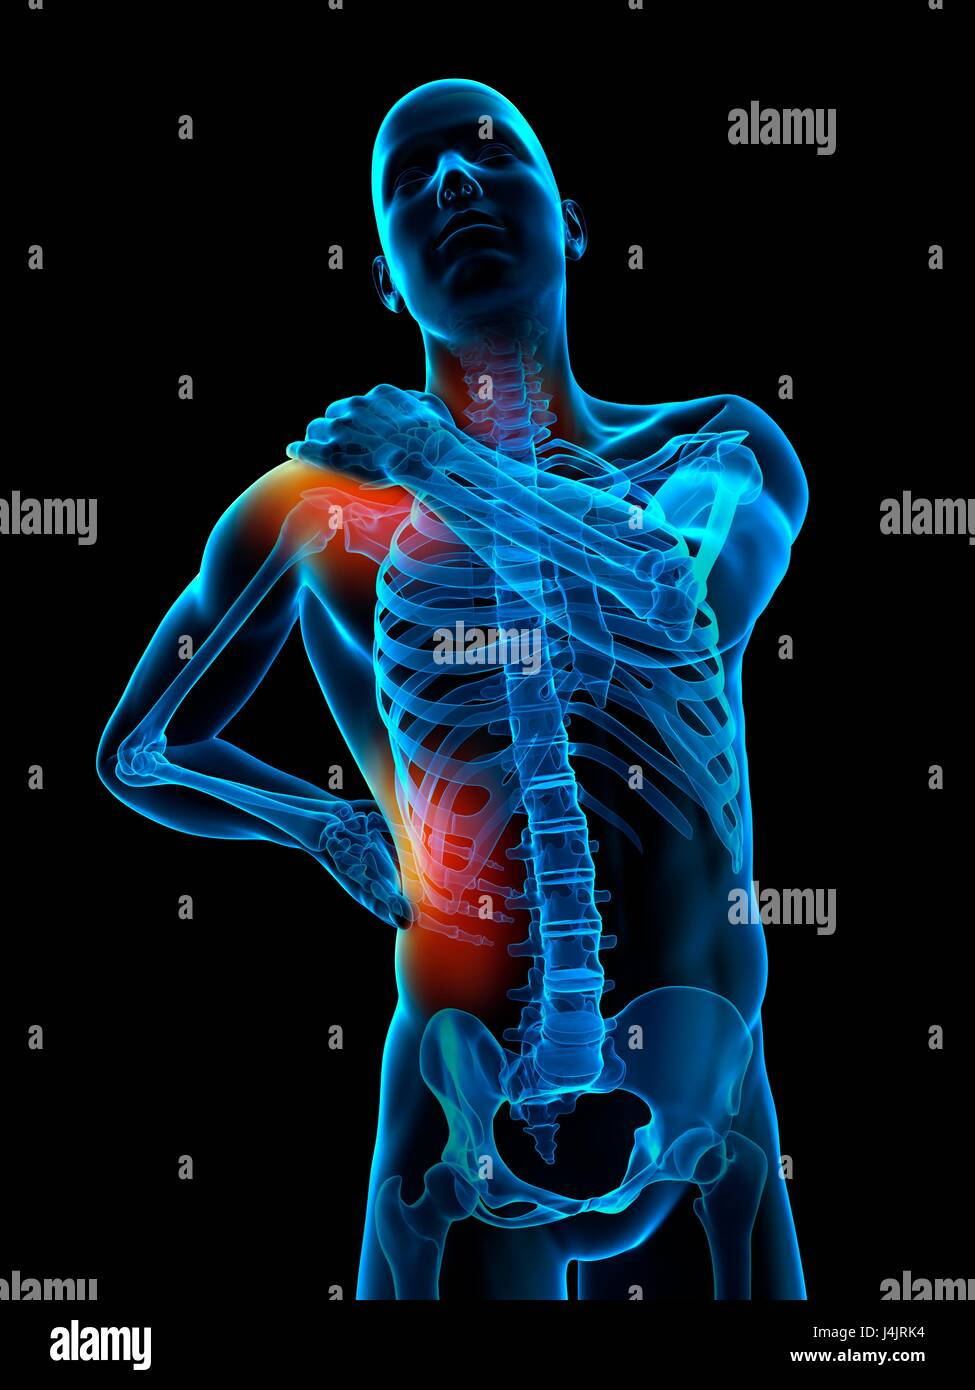 Skeletal Structure Of Human Shoulder And Waist Pain Illustration